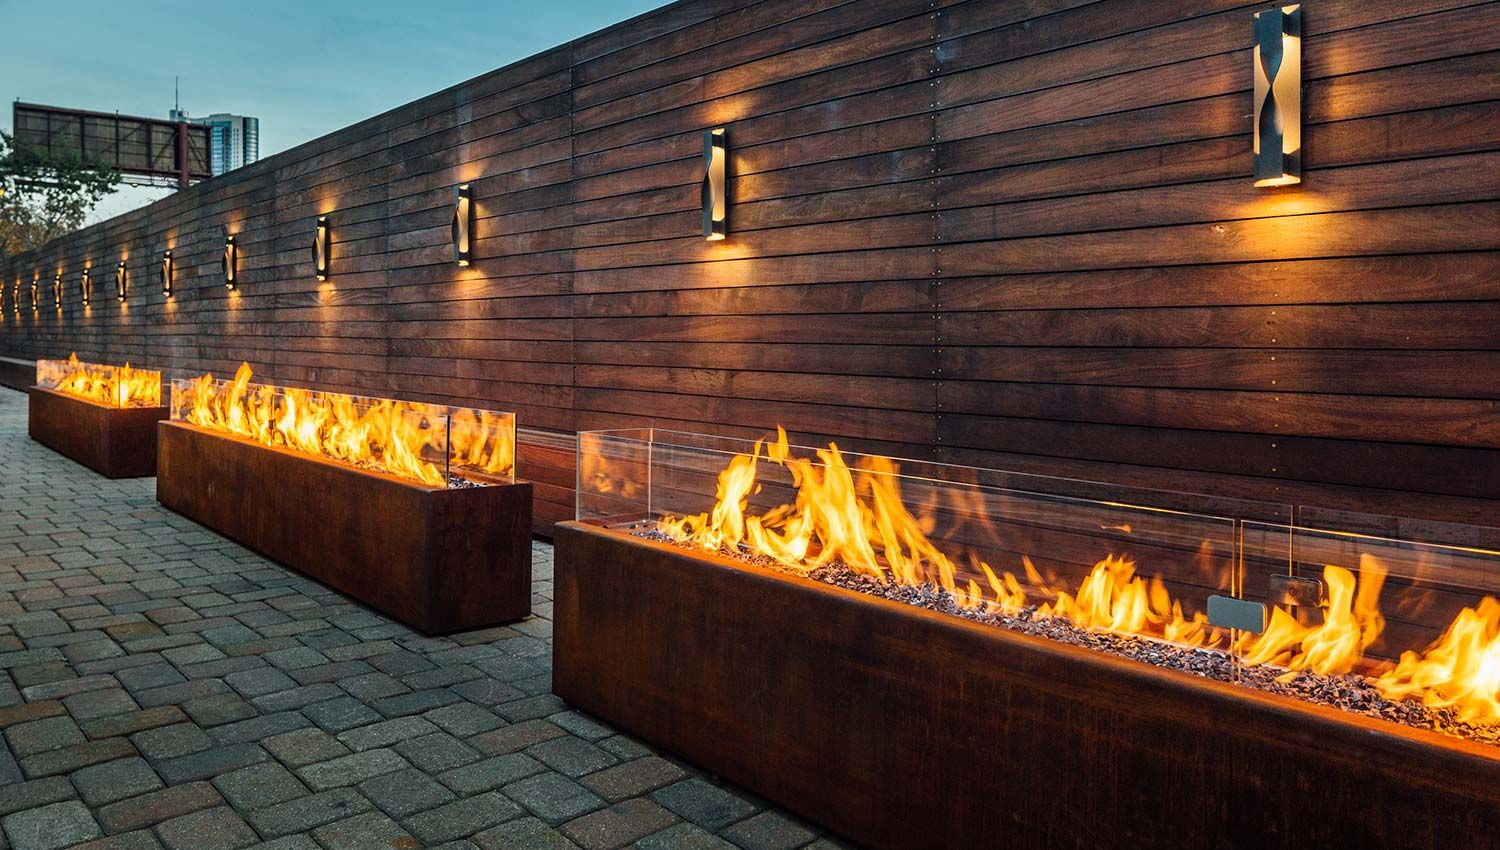 Komodo Outdoor Linear Fire Pit | CSA CE Certified | Paloform North America  UK Europe | Custom models shown in Corten steel with lava rock topping and  glass ... - Komodo Outdoor Linear Fire Pit CSA CE Certified Paloform North